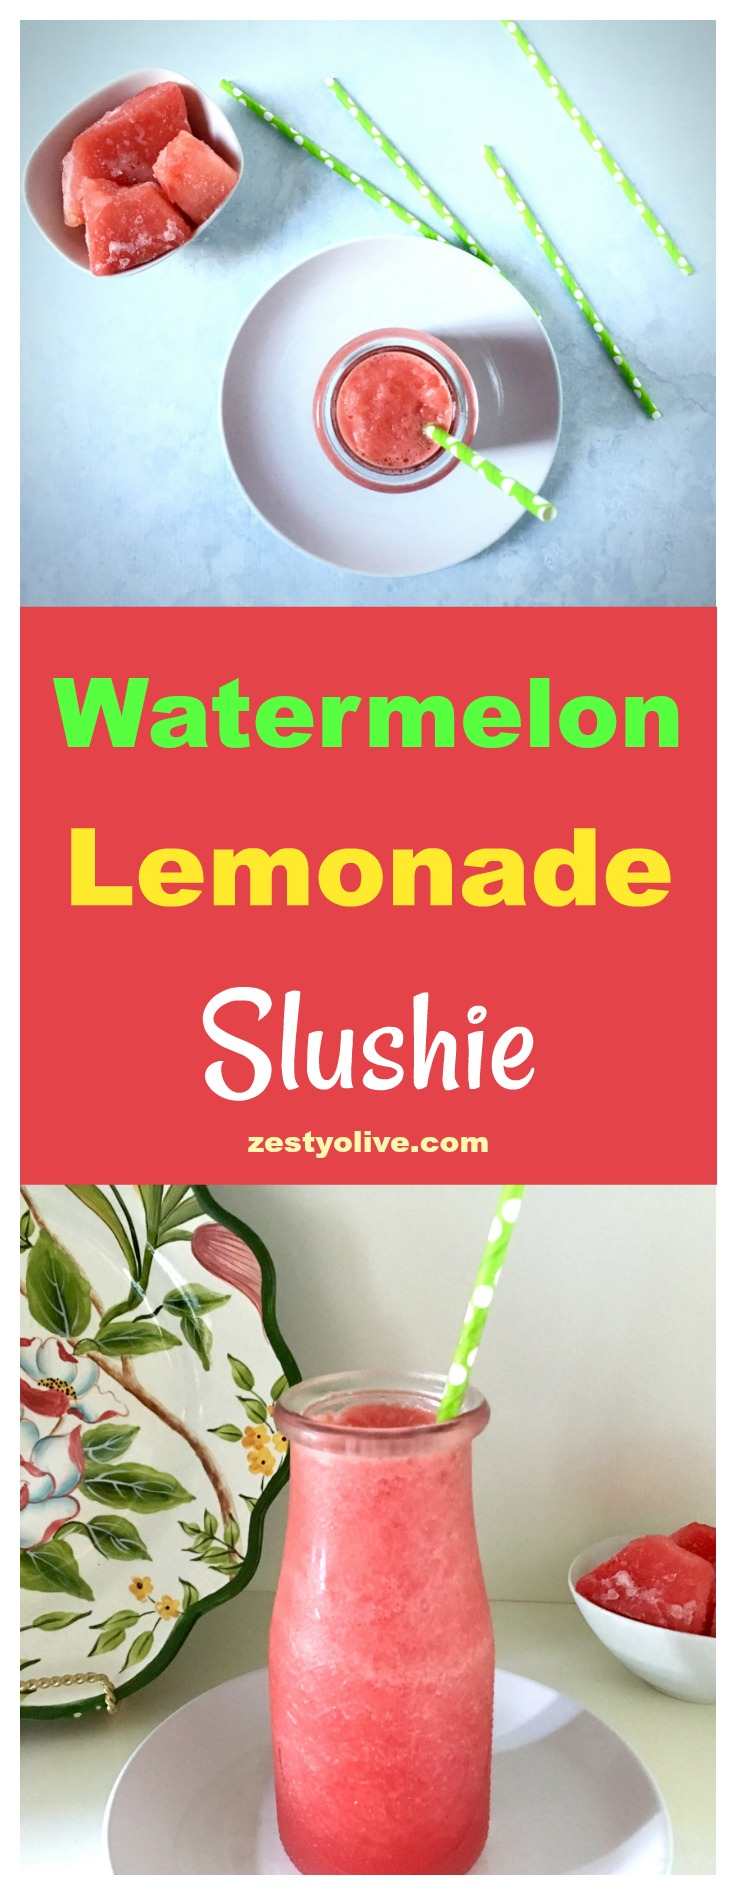 Watermelon Lemonade Slushie